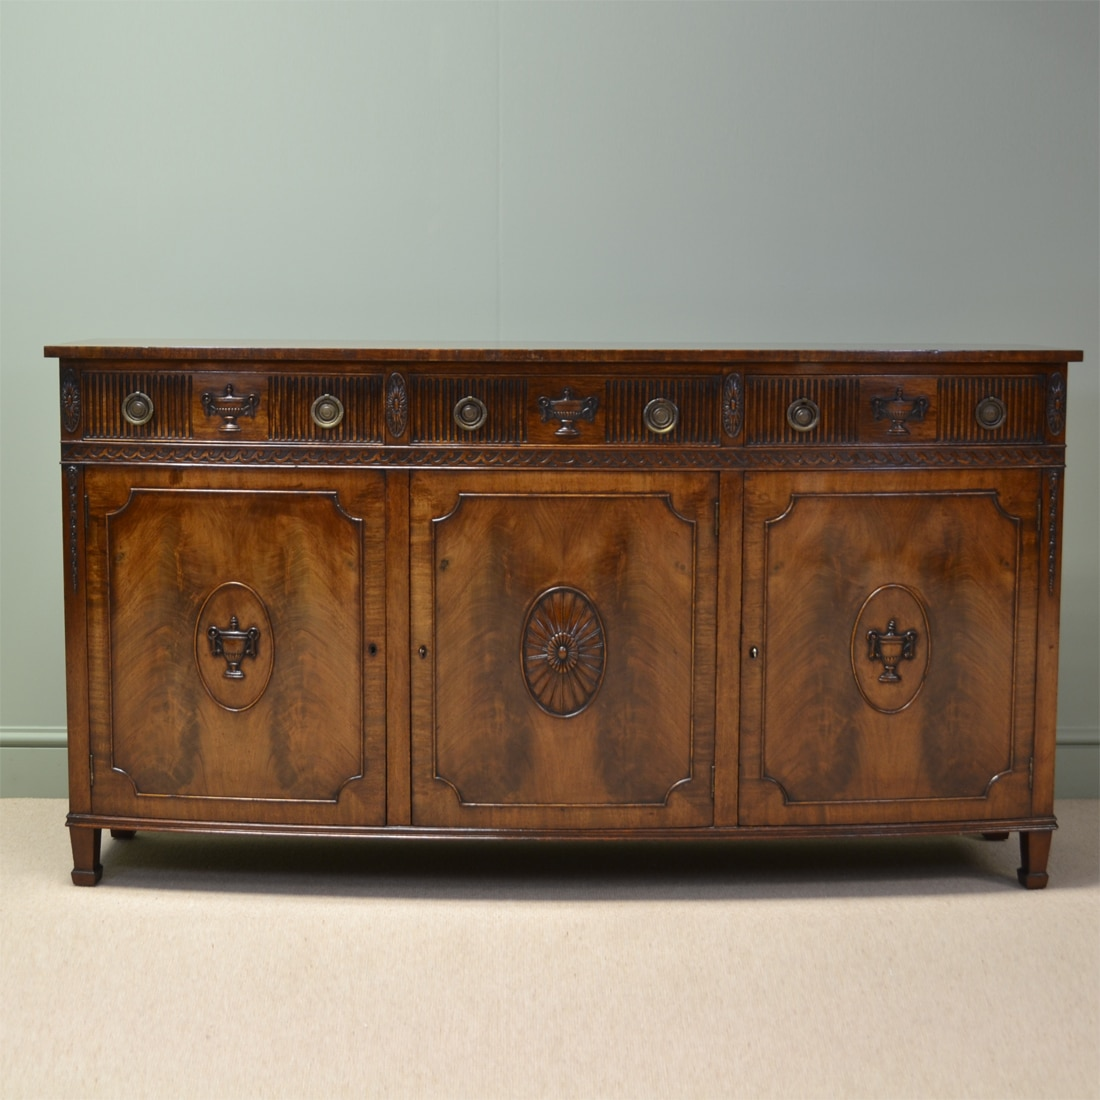 Striking Quality Antique Mahogany Edwardian Bow Fronted Sideboard by S & H Jewell